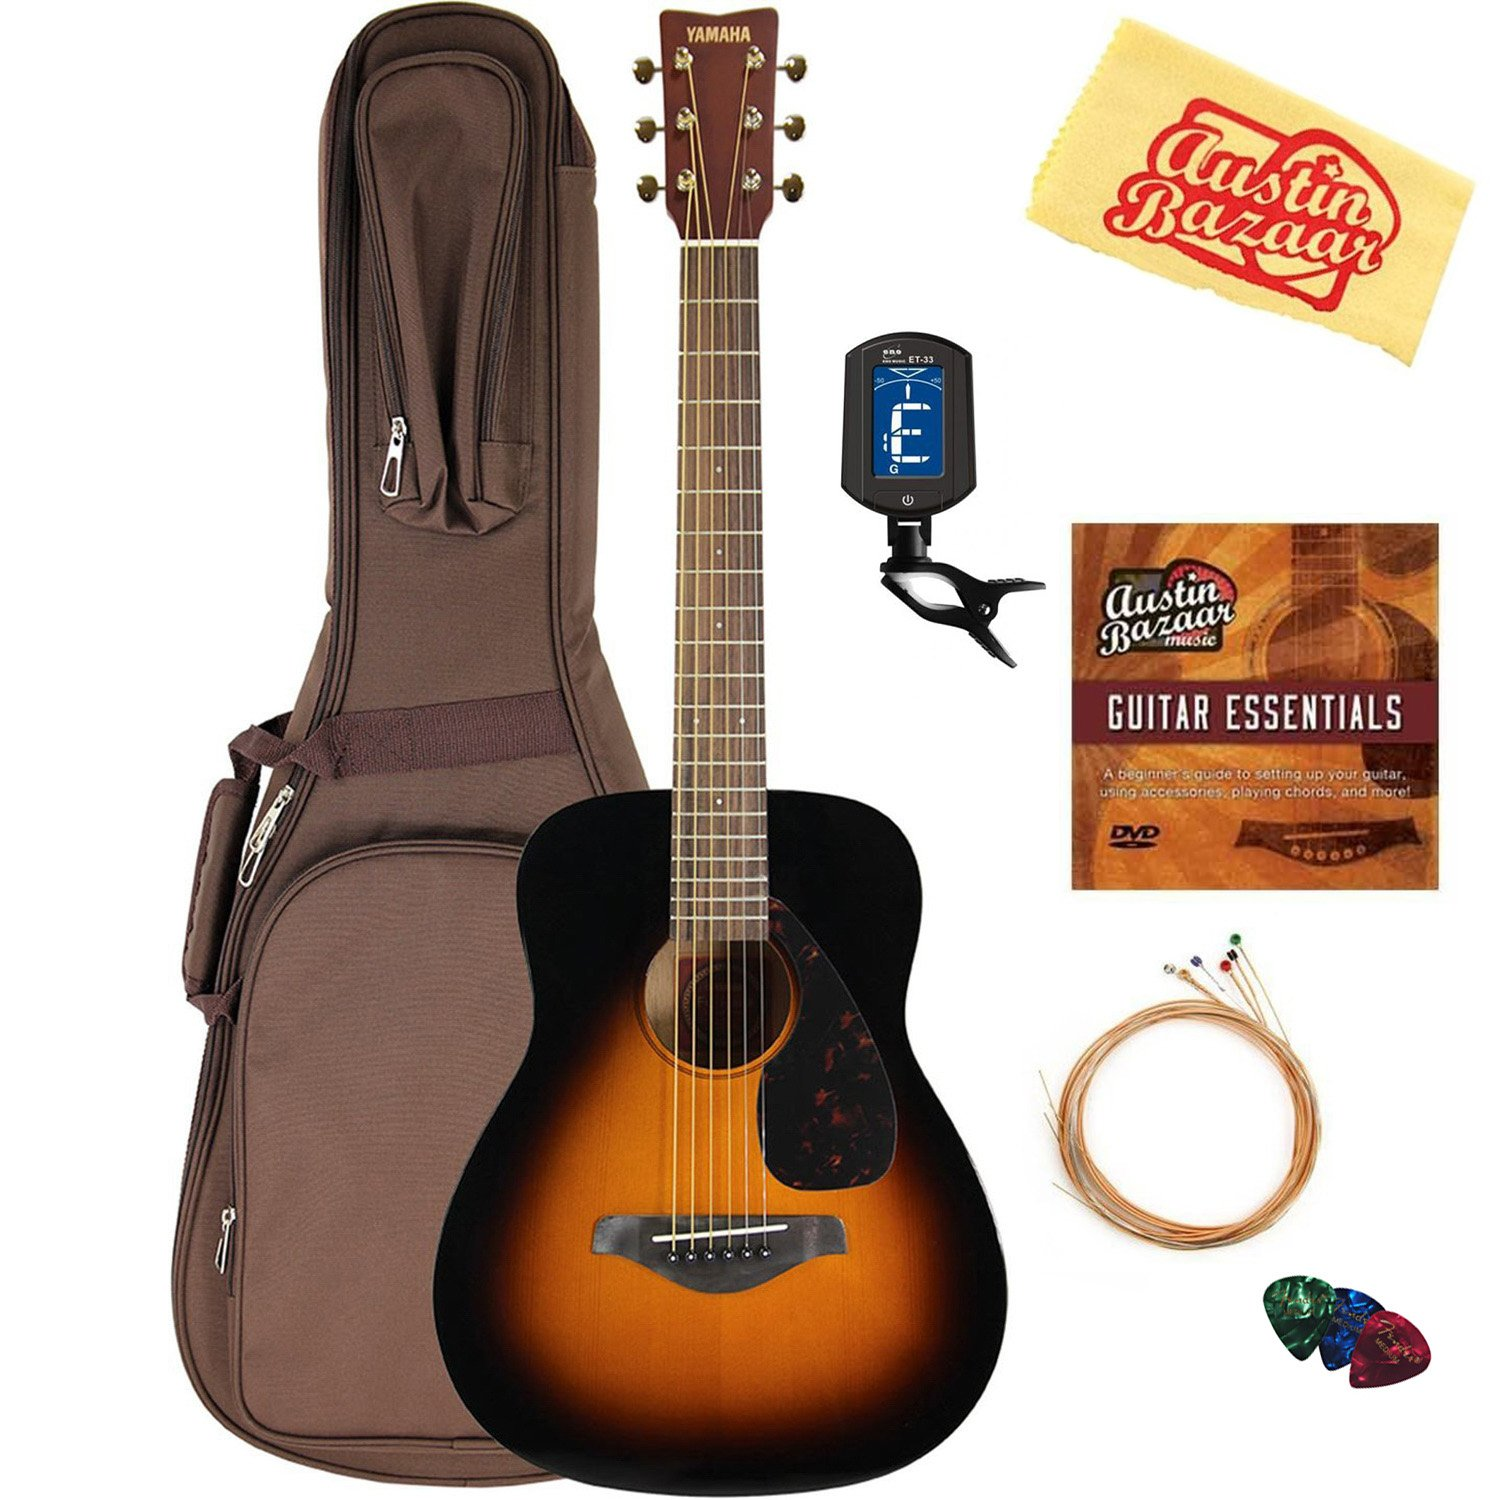 Yamaha JR2 Junior-Size 33-Inch Acoustic Guitar - Tobacco Sunburst Bundle with Gig Bag, Tuner, Strings, String Winder, Picks, Austin Bazaar Instructional DVD, and Polishing Cloth by YAMAHA